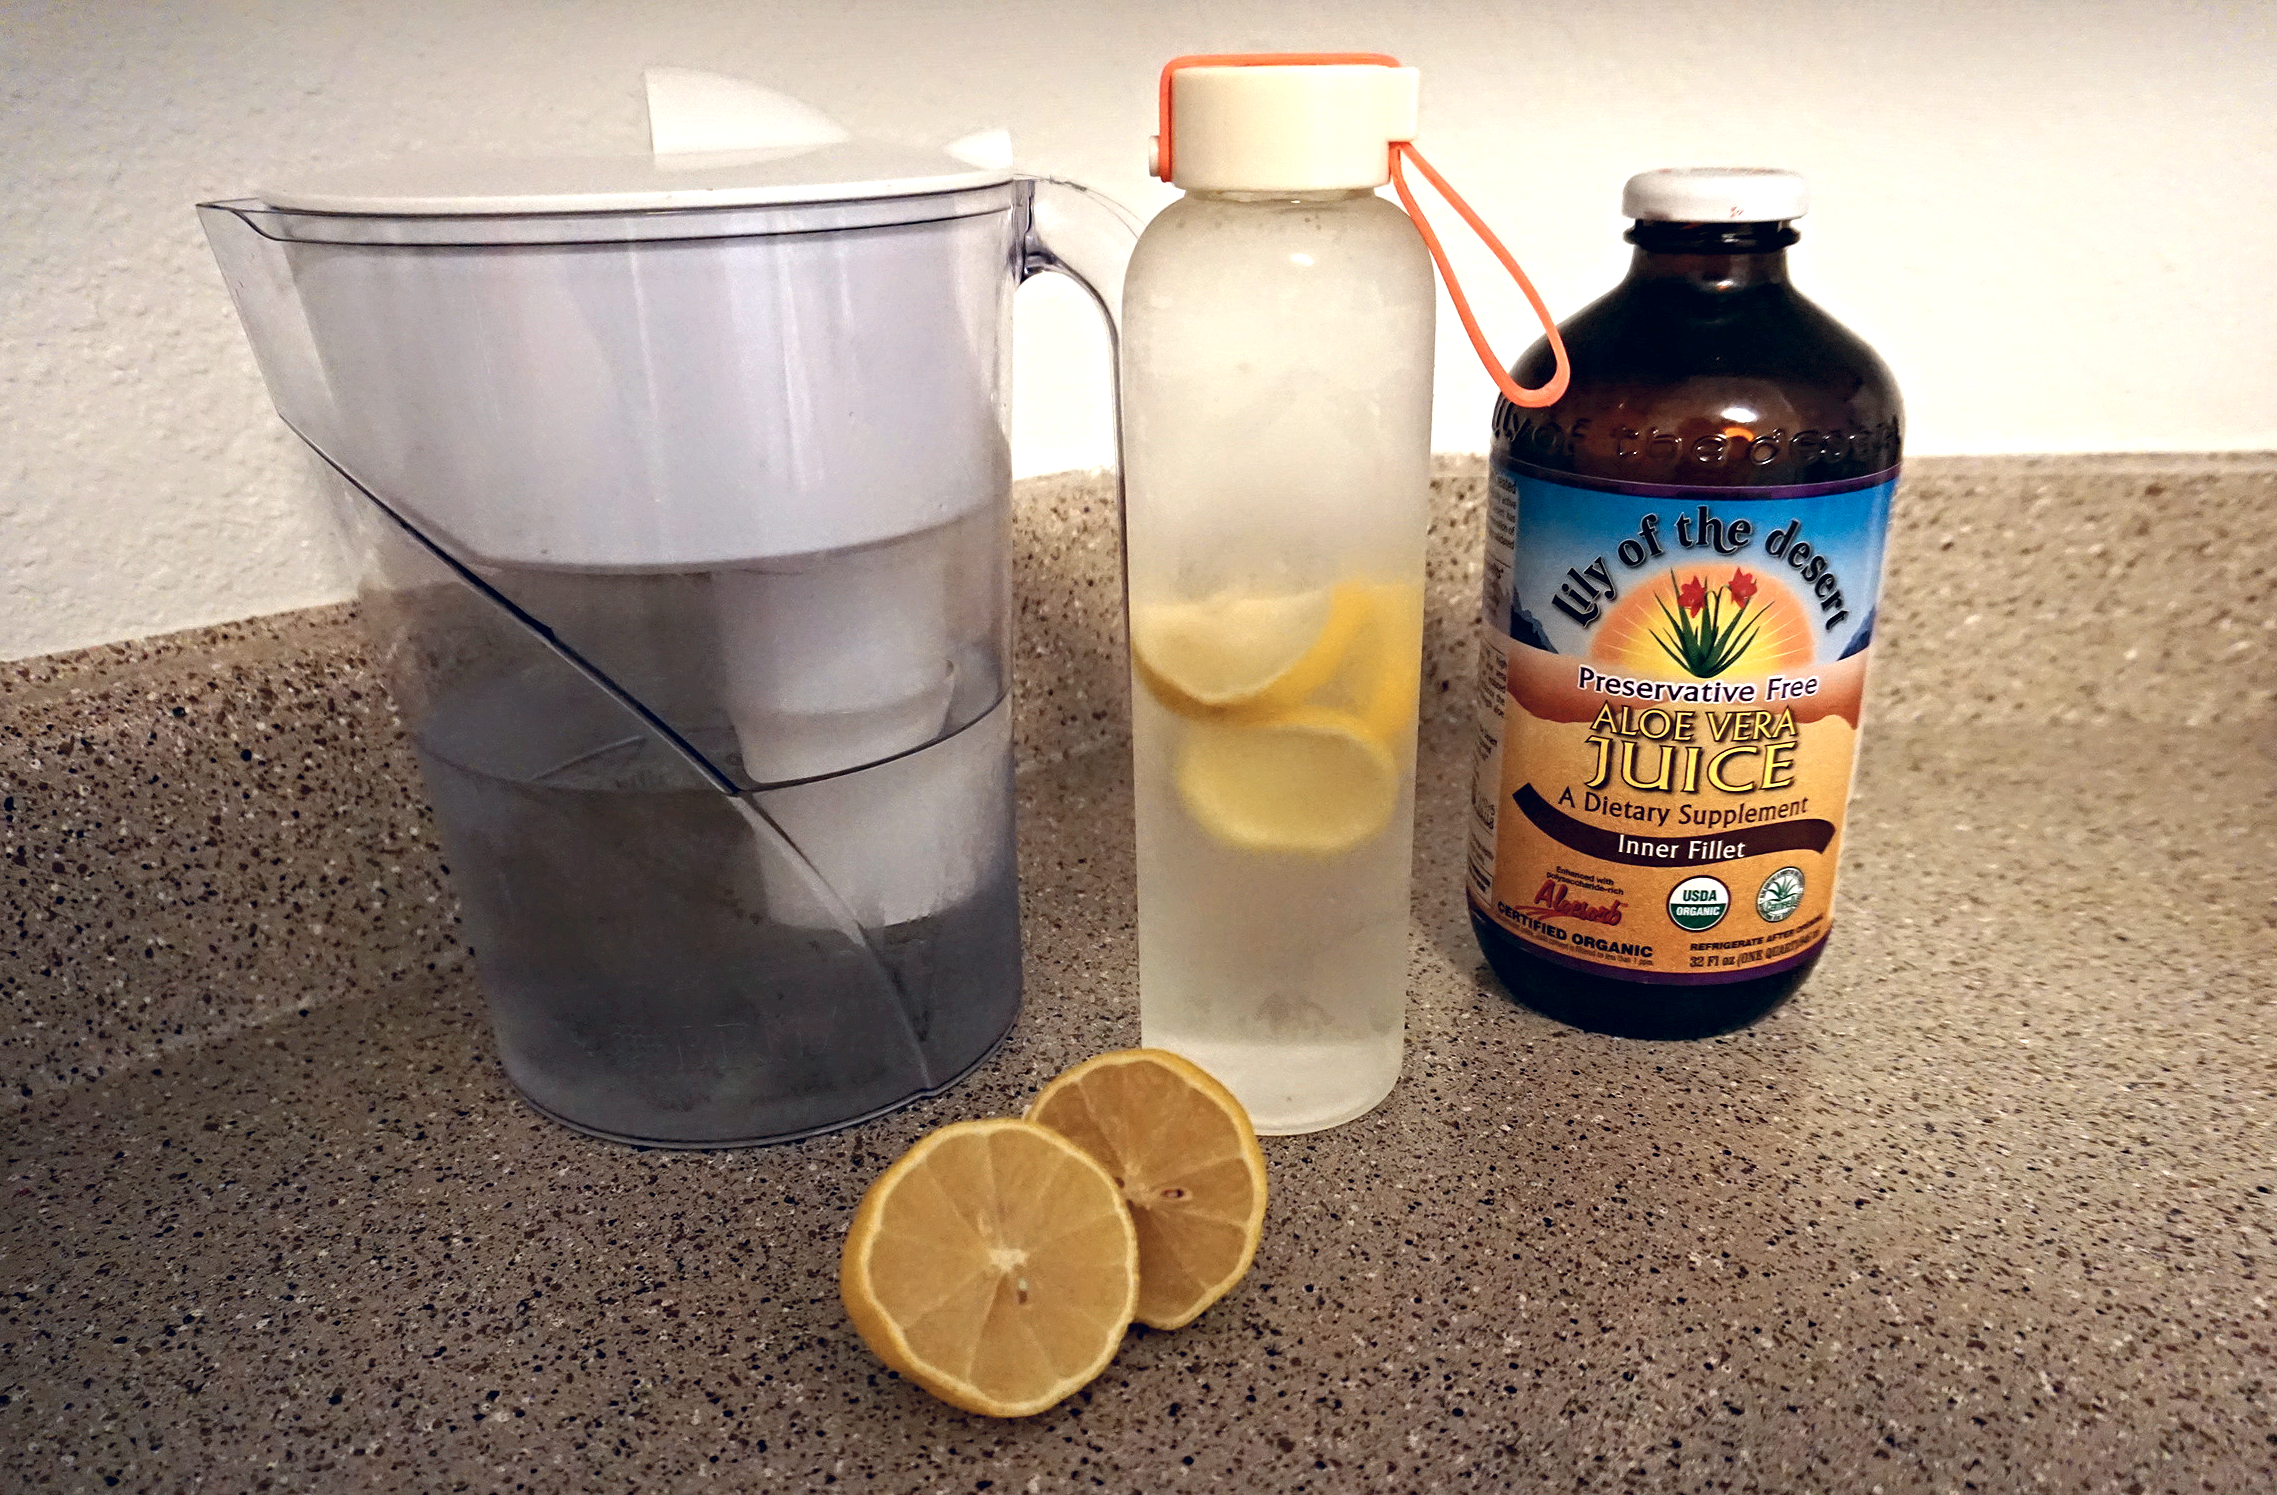 My personal pre-workout drink: Water, aloe vera juice, and lemon water.